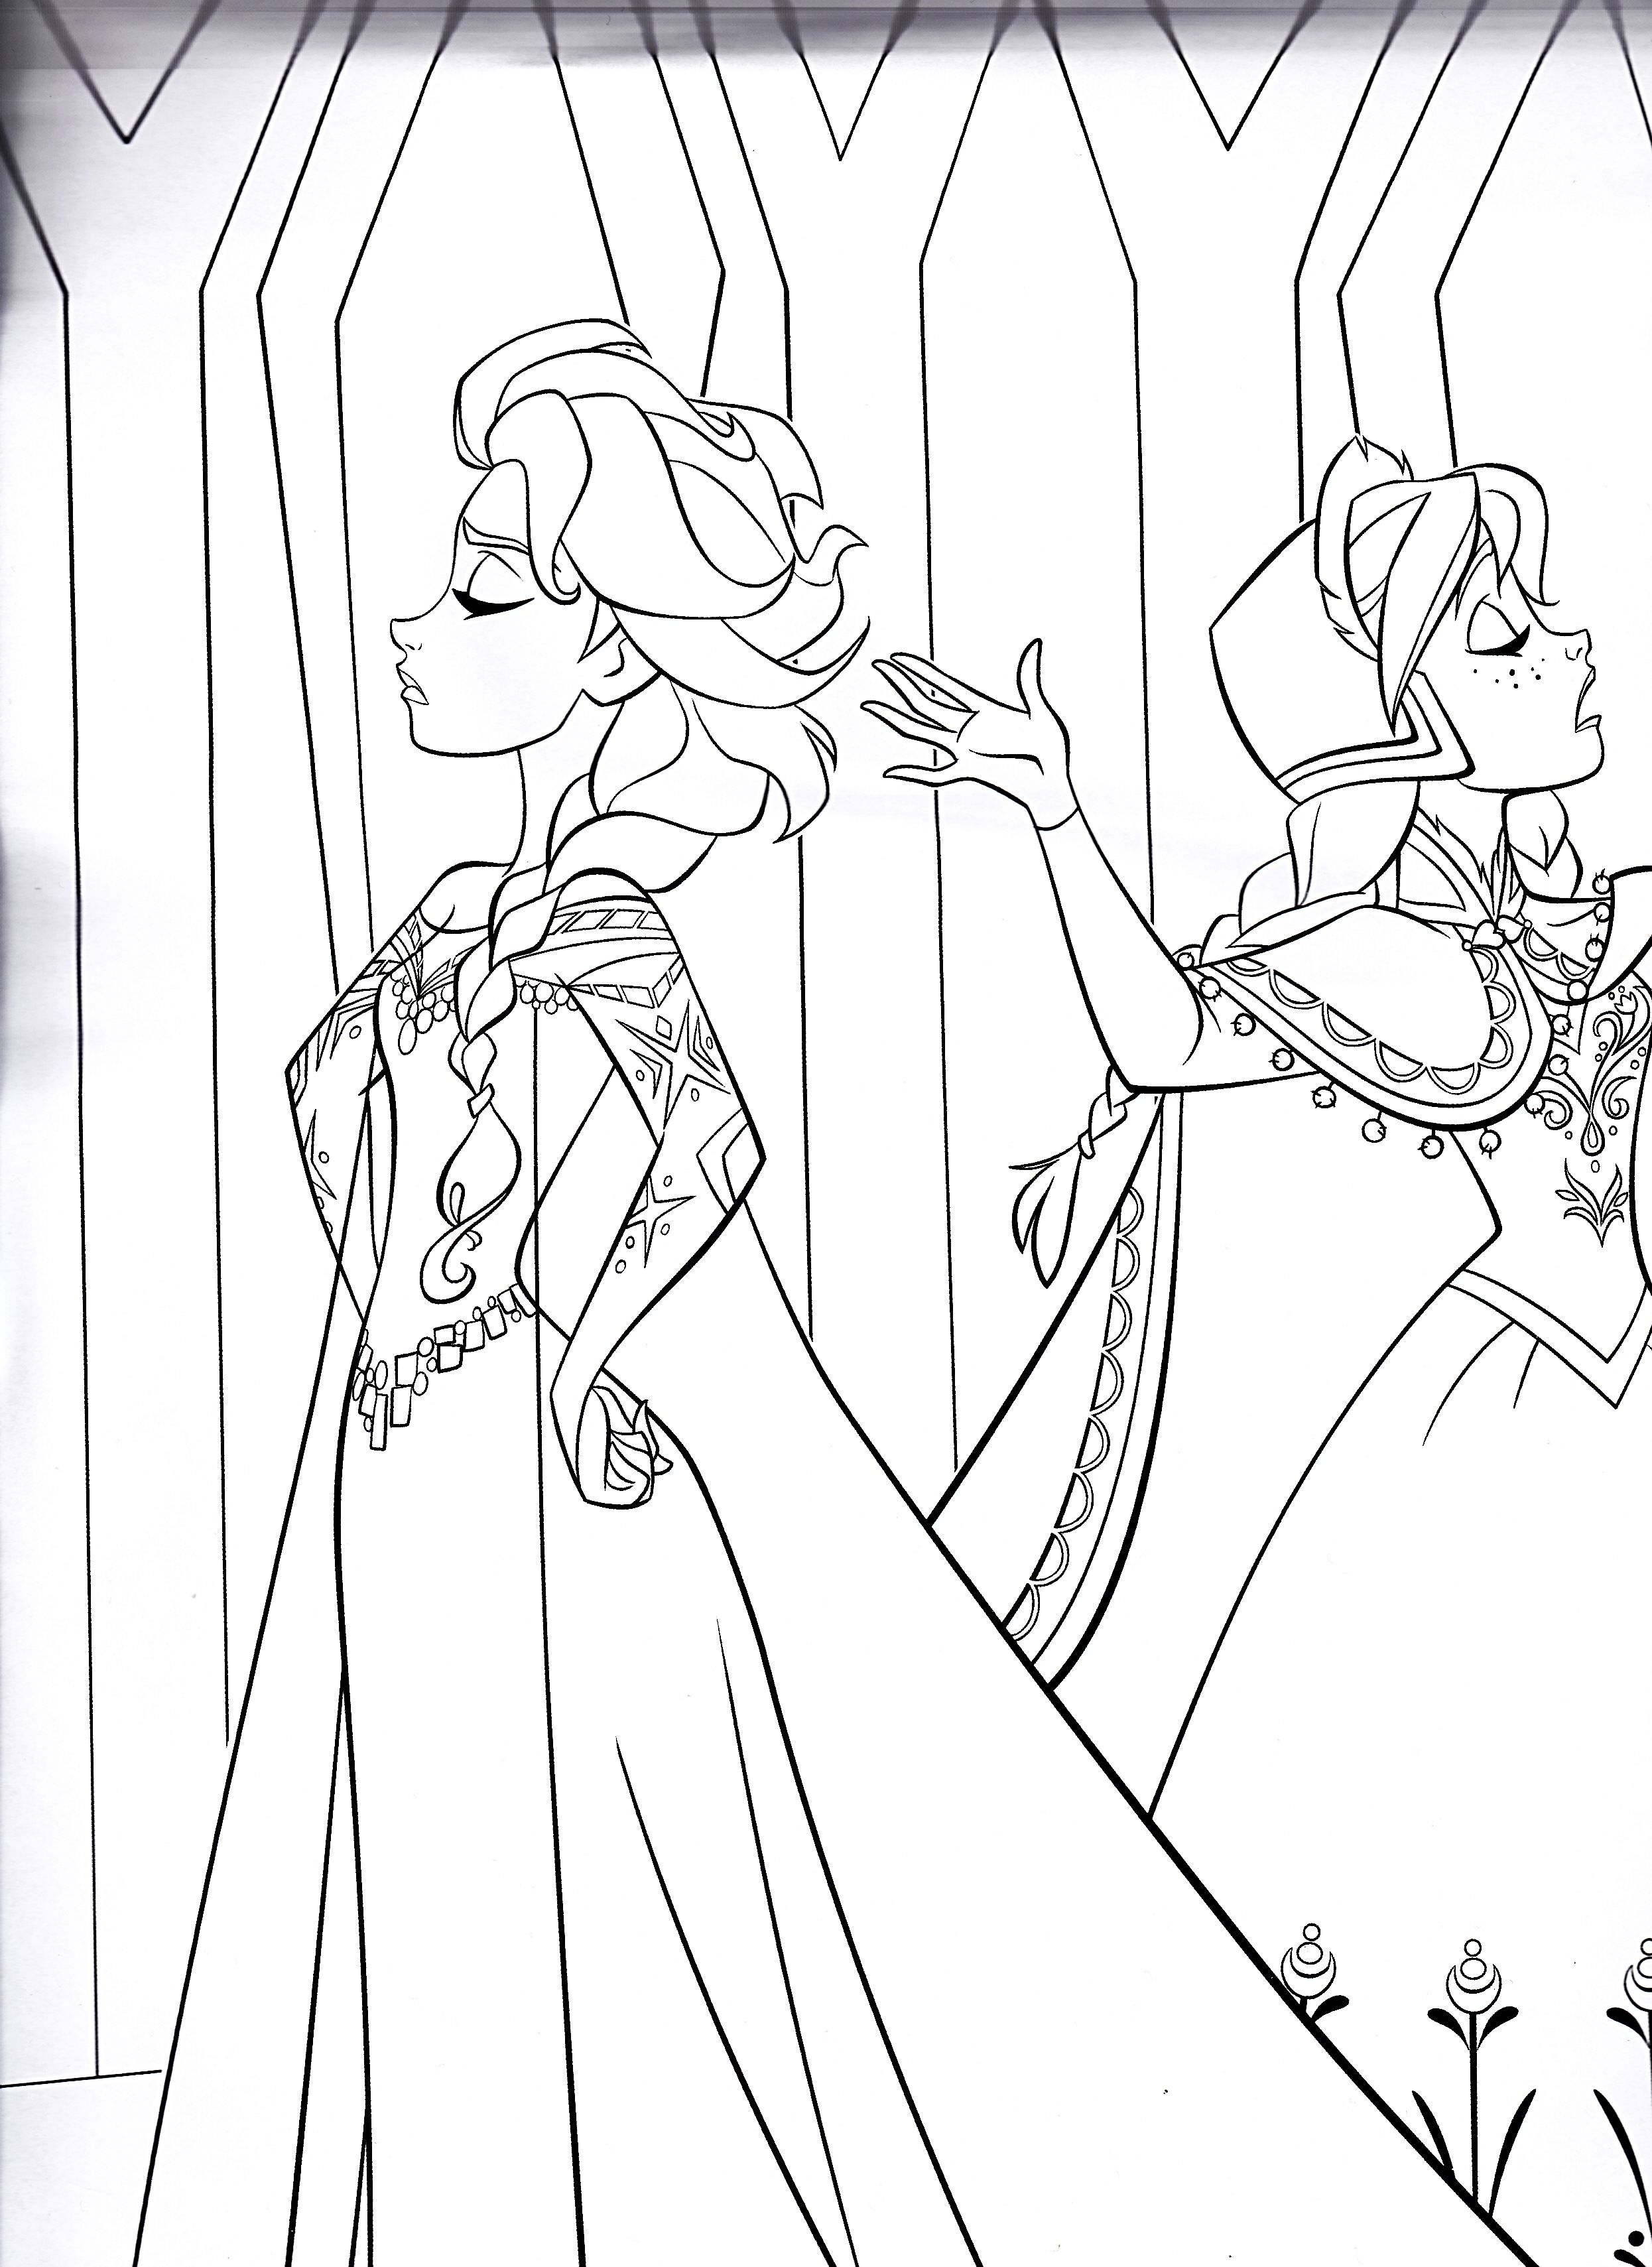 Elsa and anna colouring page book projects to try pinterest elsa